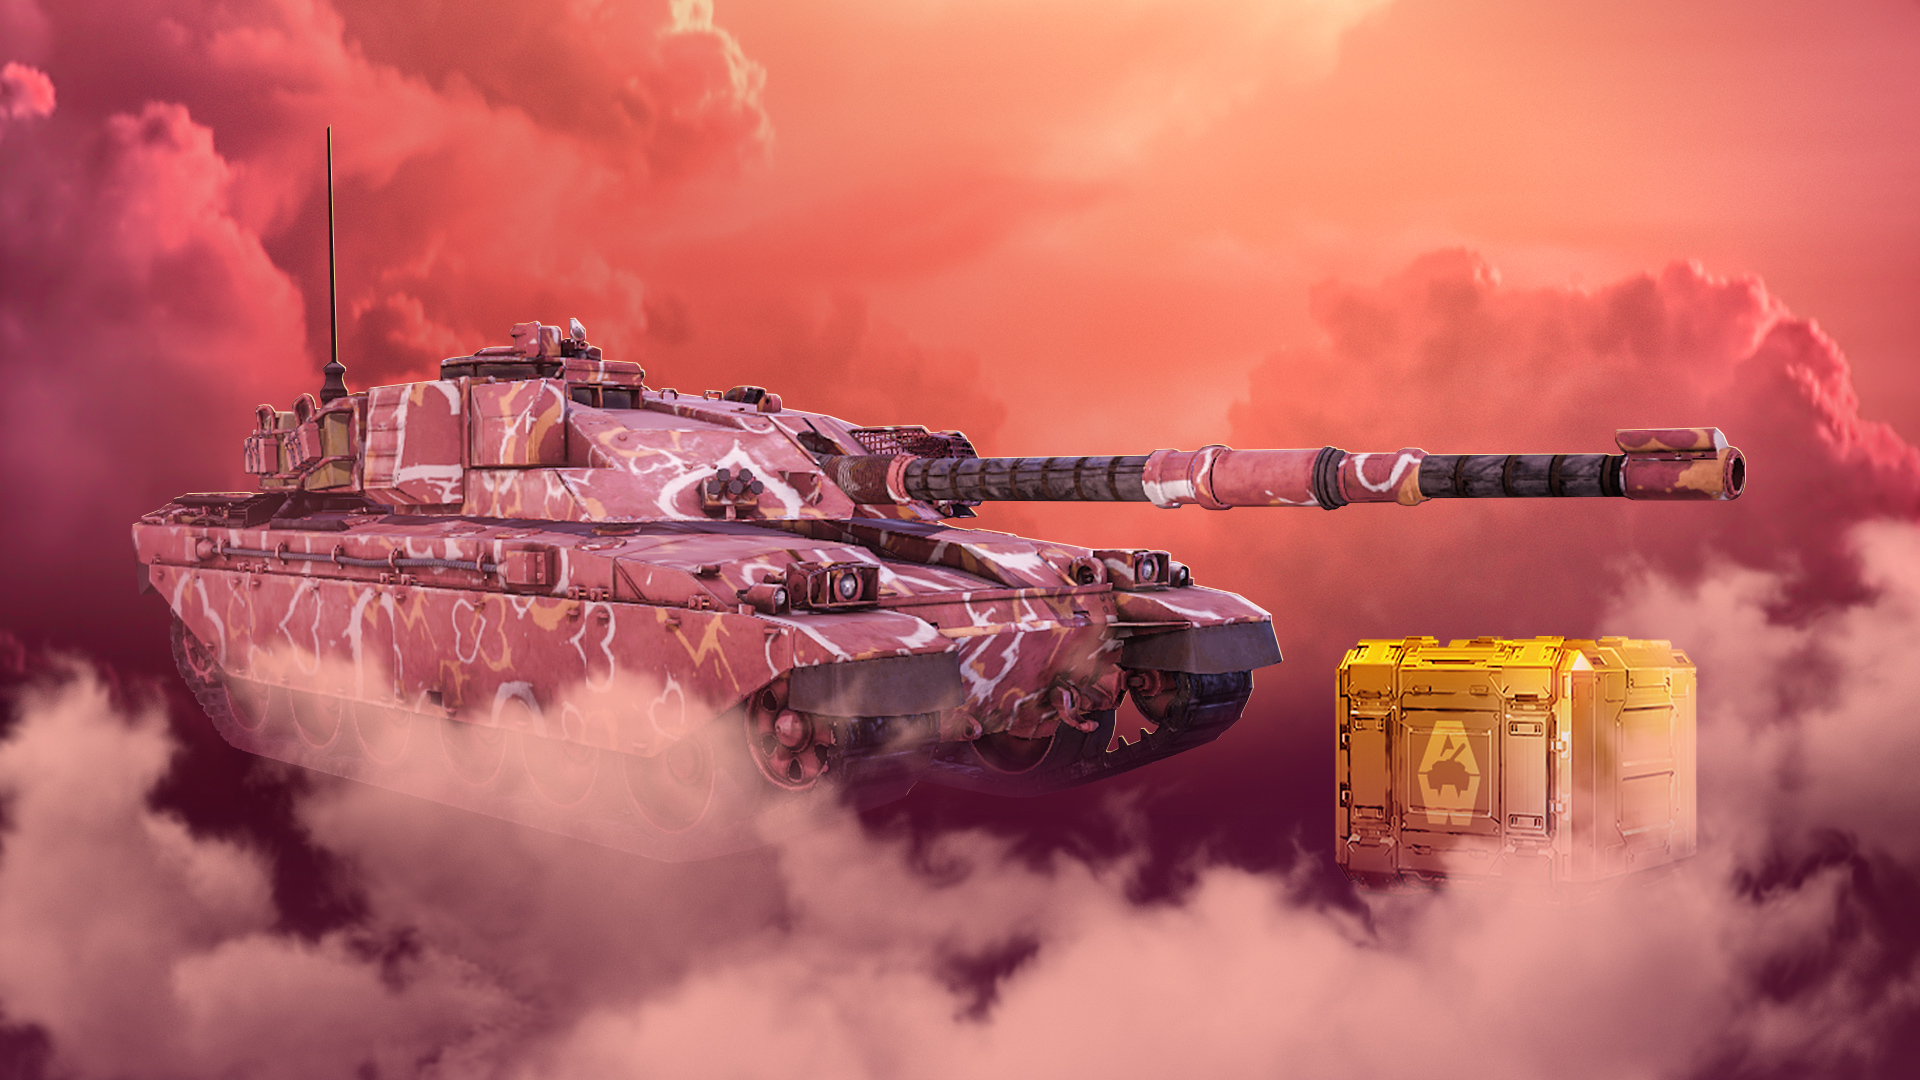 Wir Feiern Den Valentinstag Armored Warfare Official Website